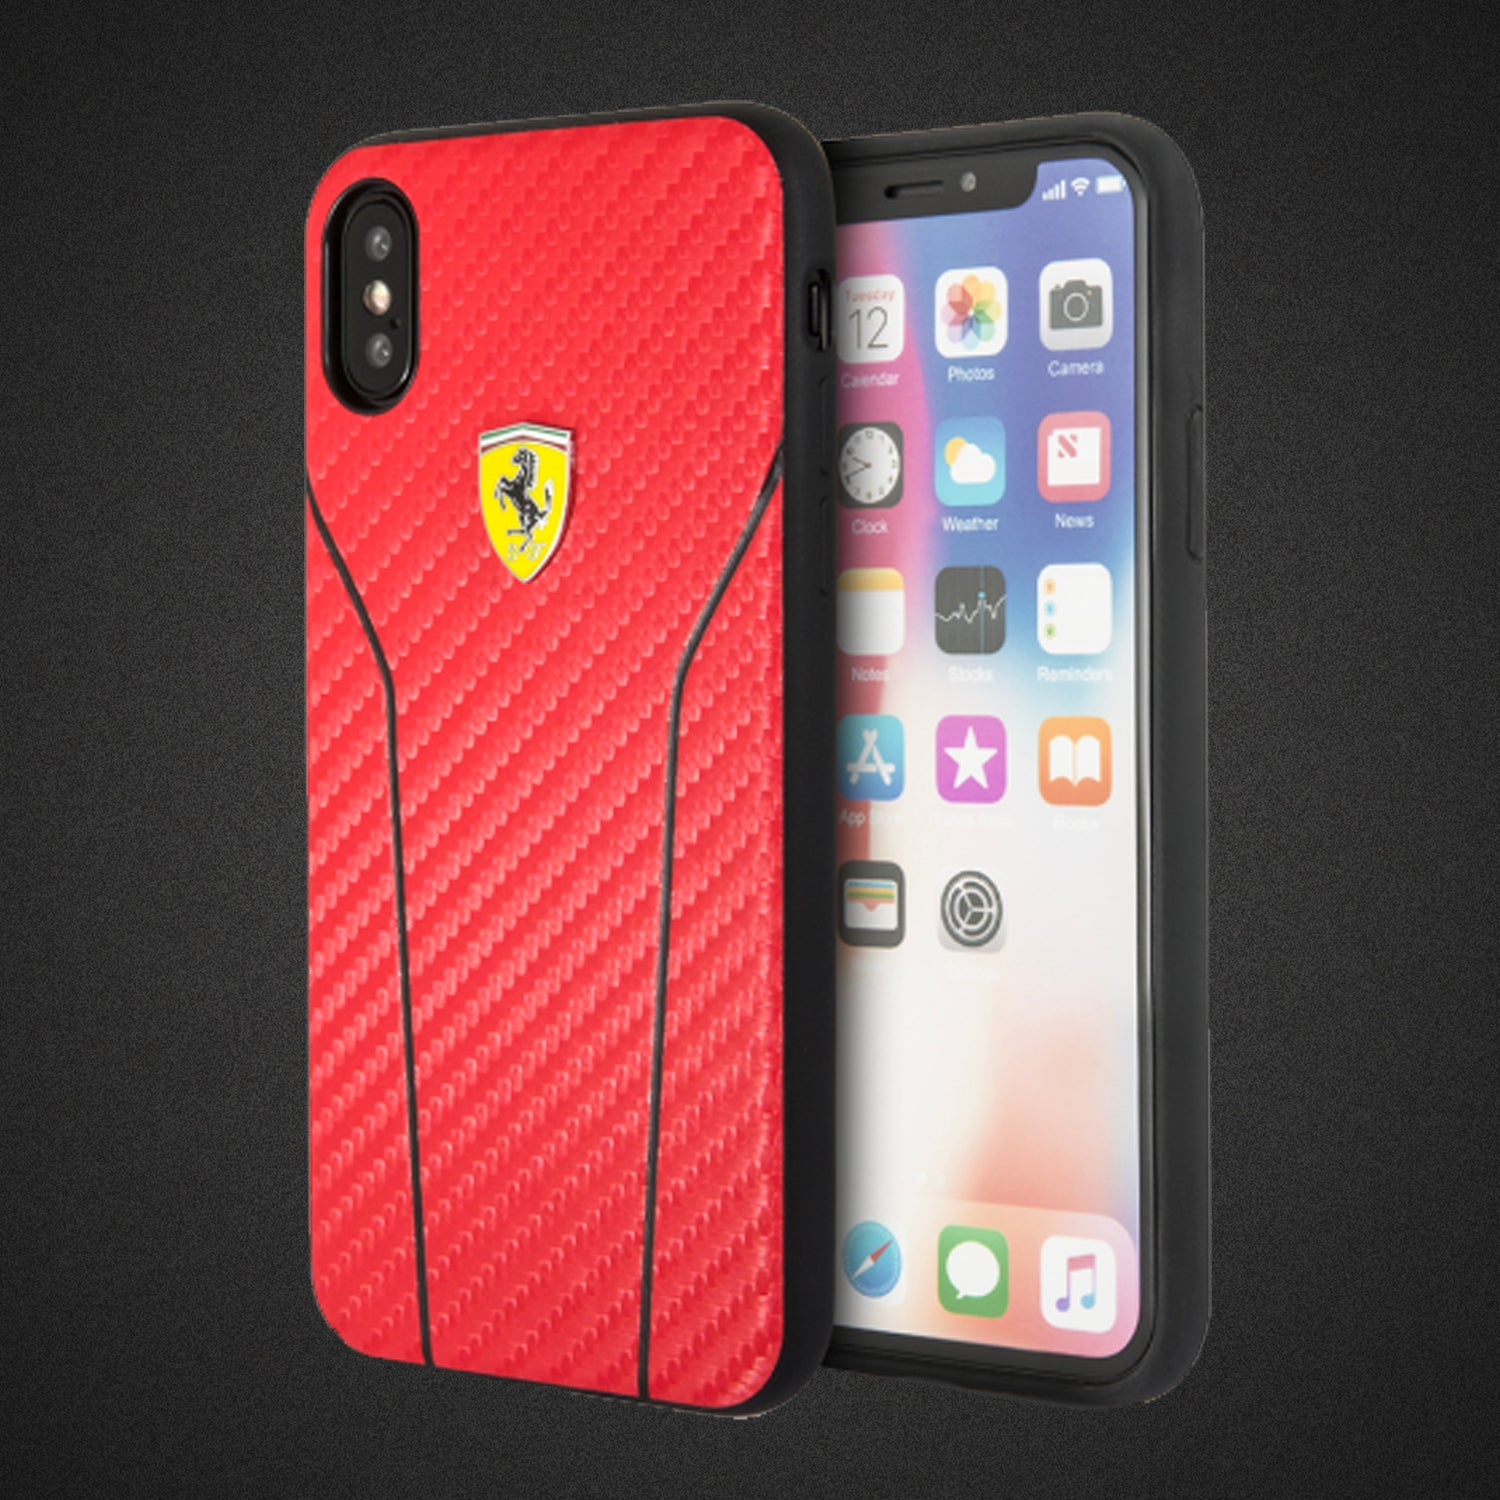 Original Ferrari Case Cover for iPhone XS/X Textured Back - Red (Retail Packaging with Verification Code)